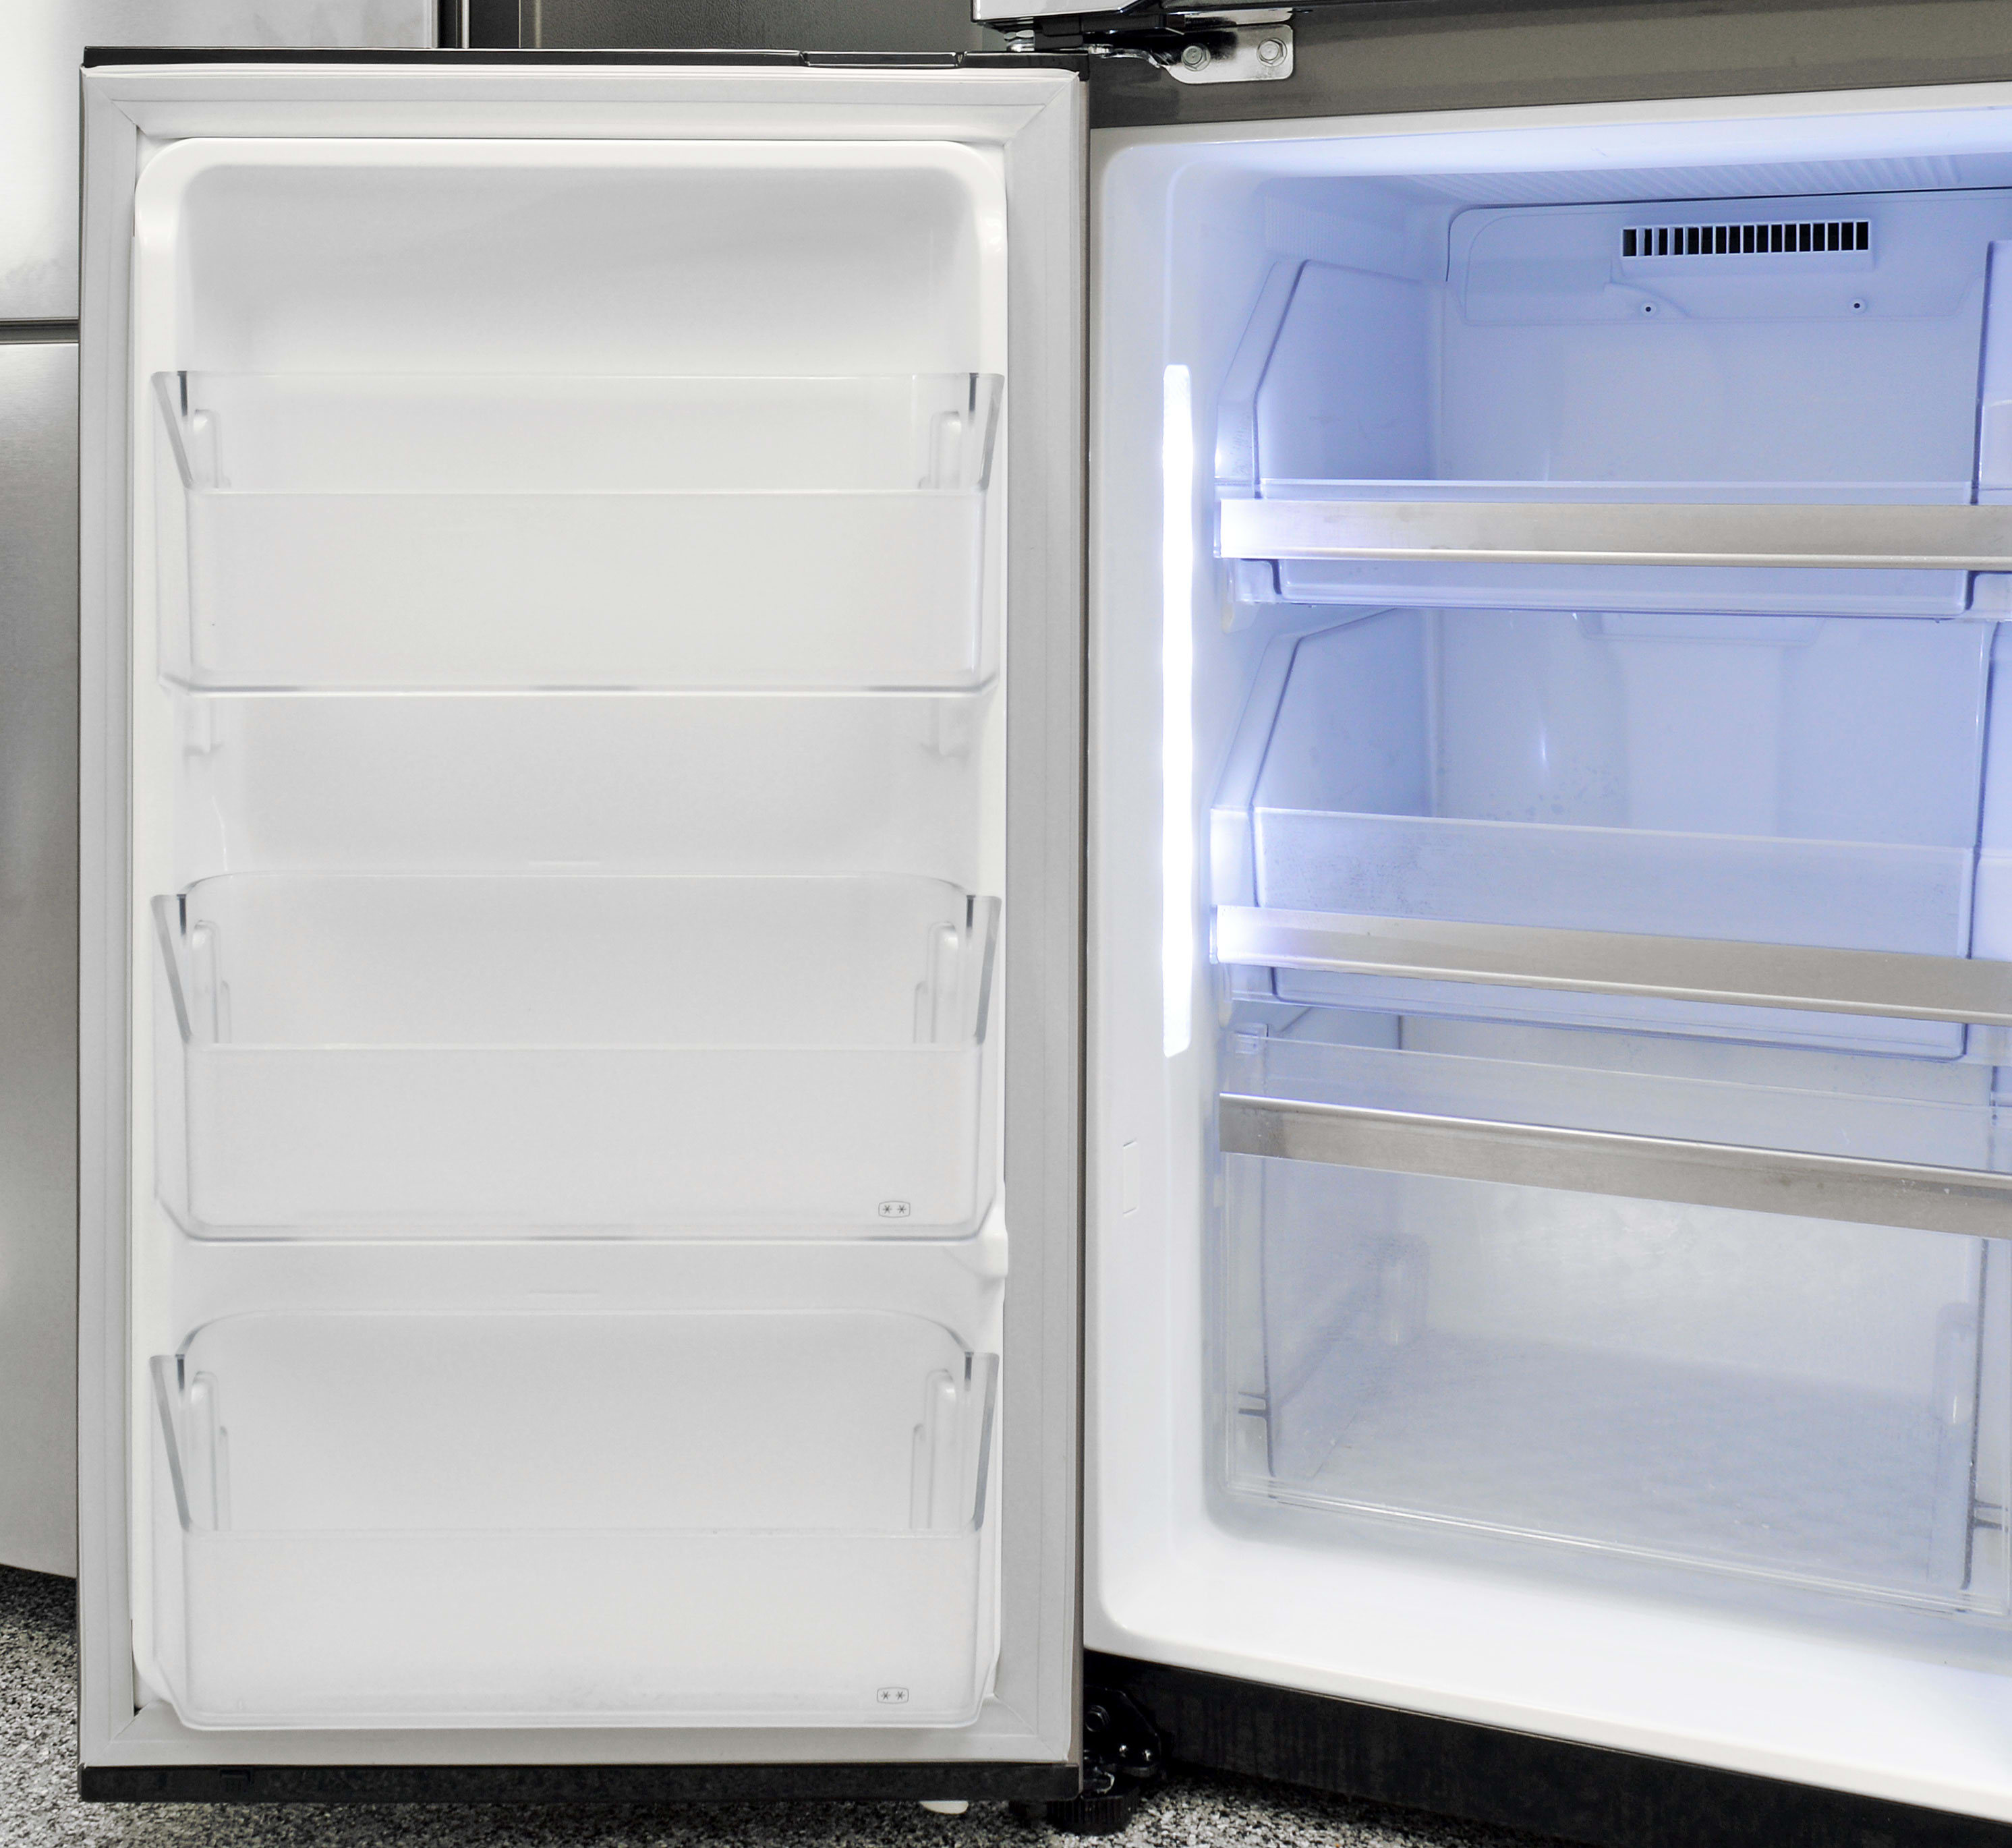 Door storage in the LG LPXS30866D's freezer is composed of three shallow shelves that supplement the larger pullout drawers.